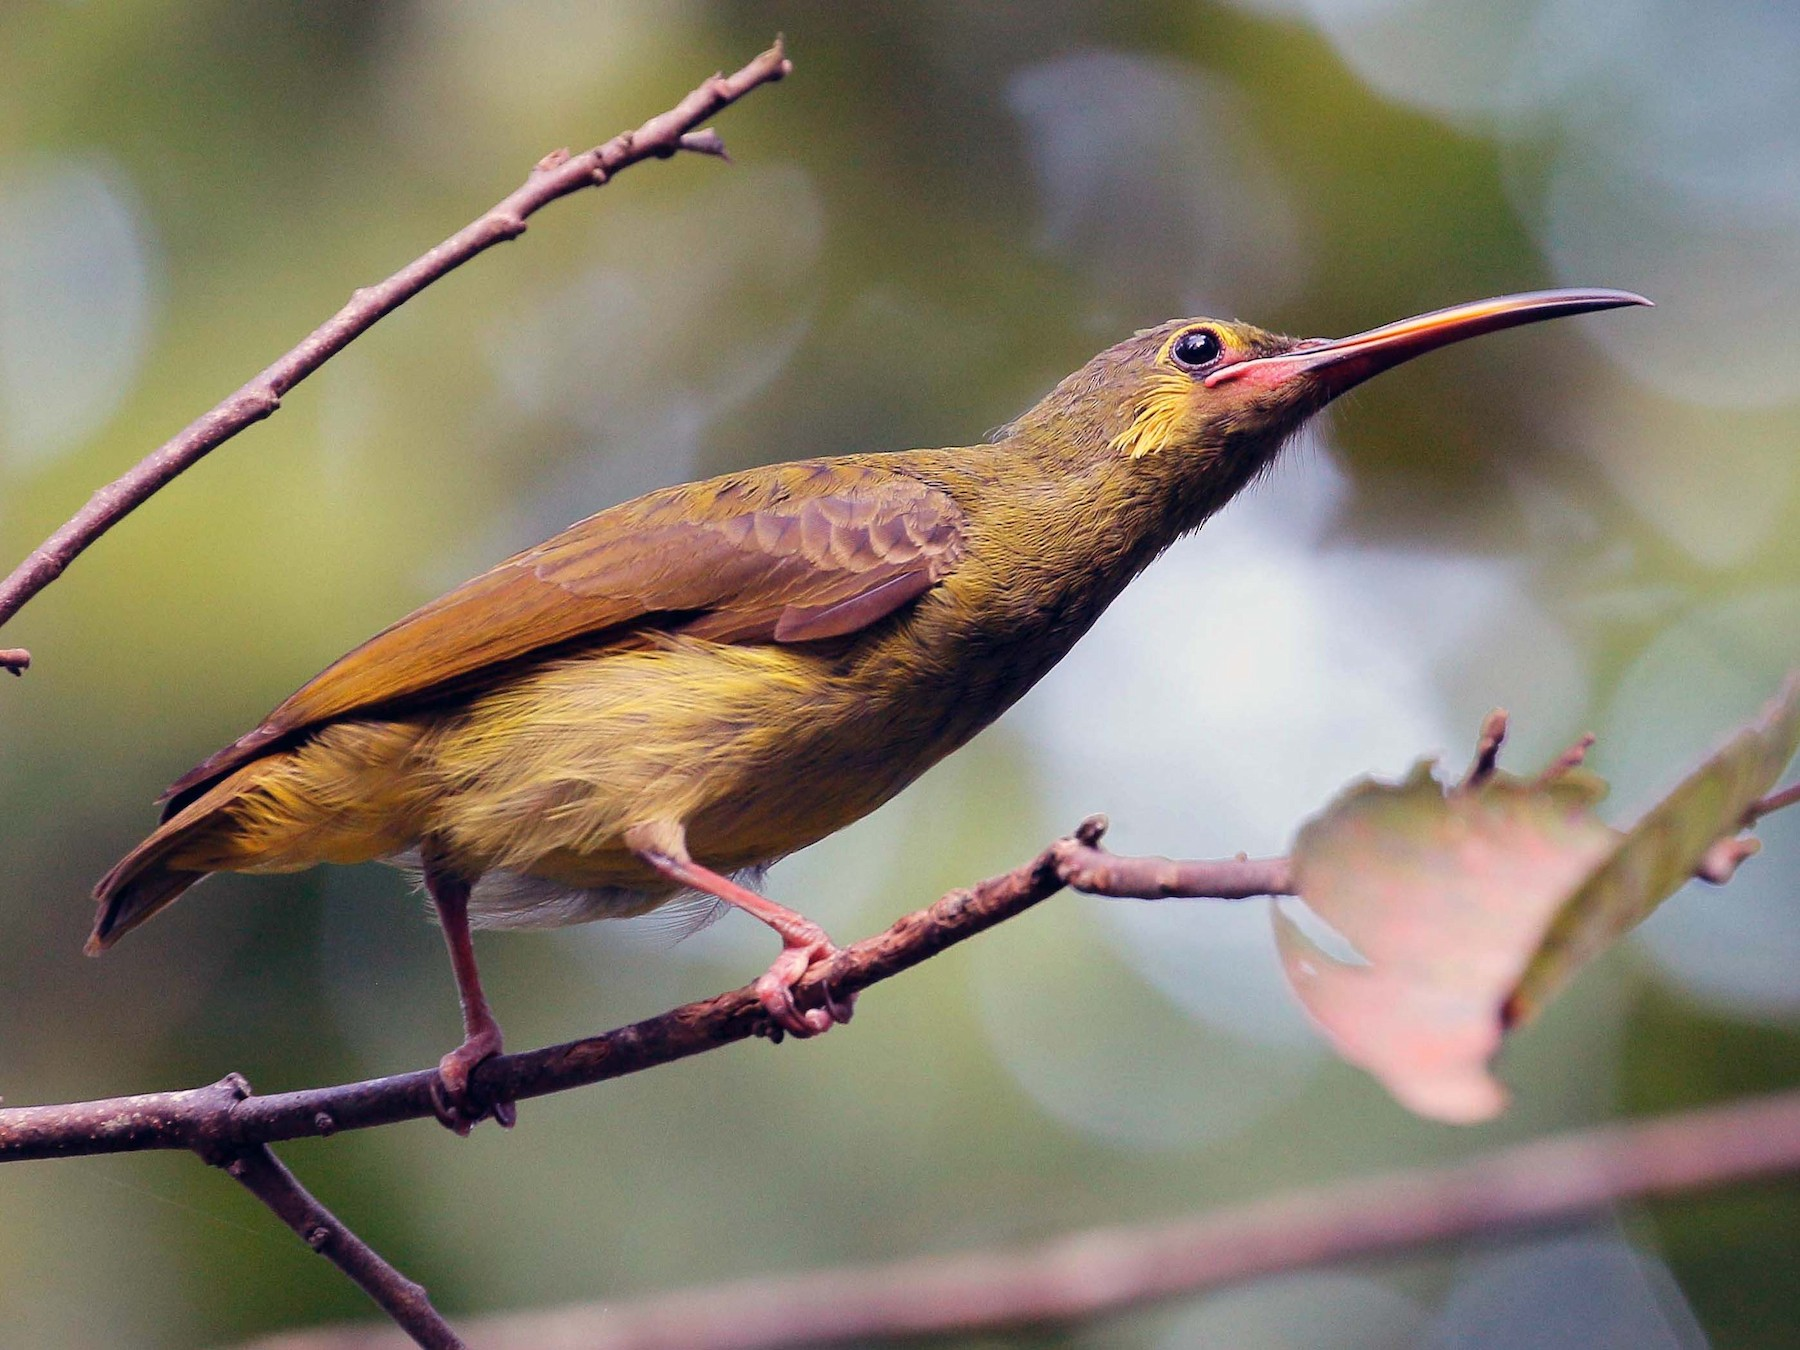 Yellow-eared Spiderhunter - Neoh Hor Kee